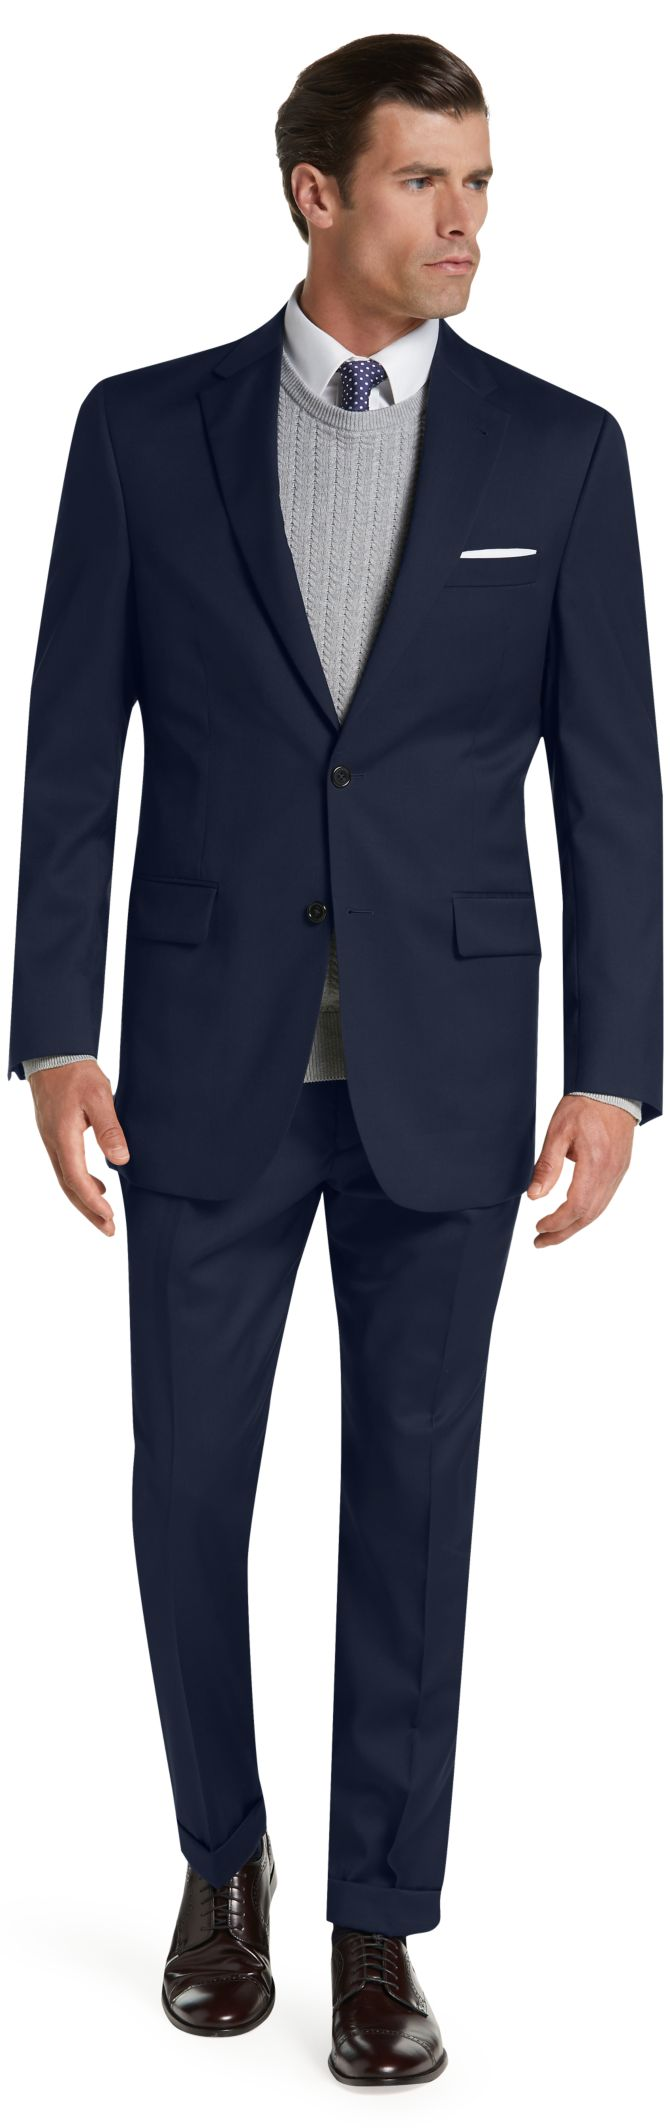 Signature Collection Traditional Fit Suit